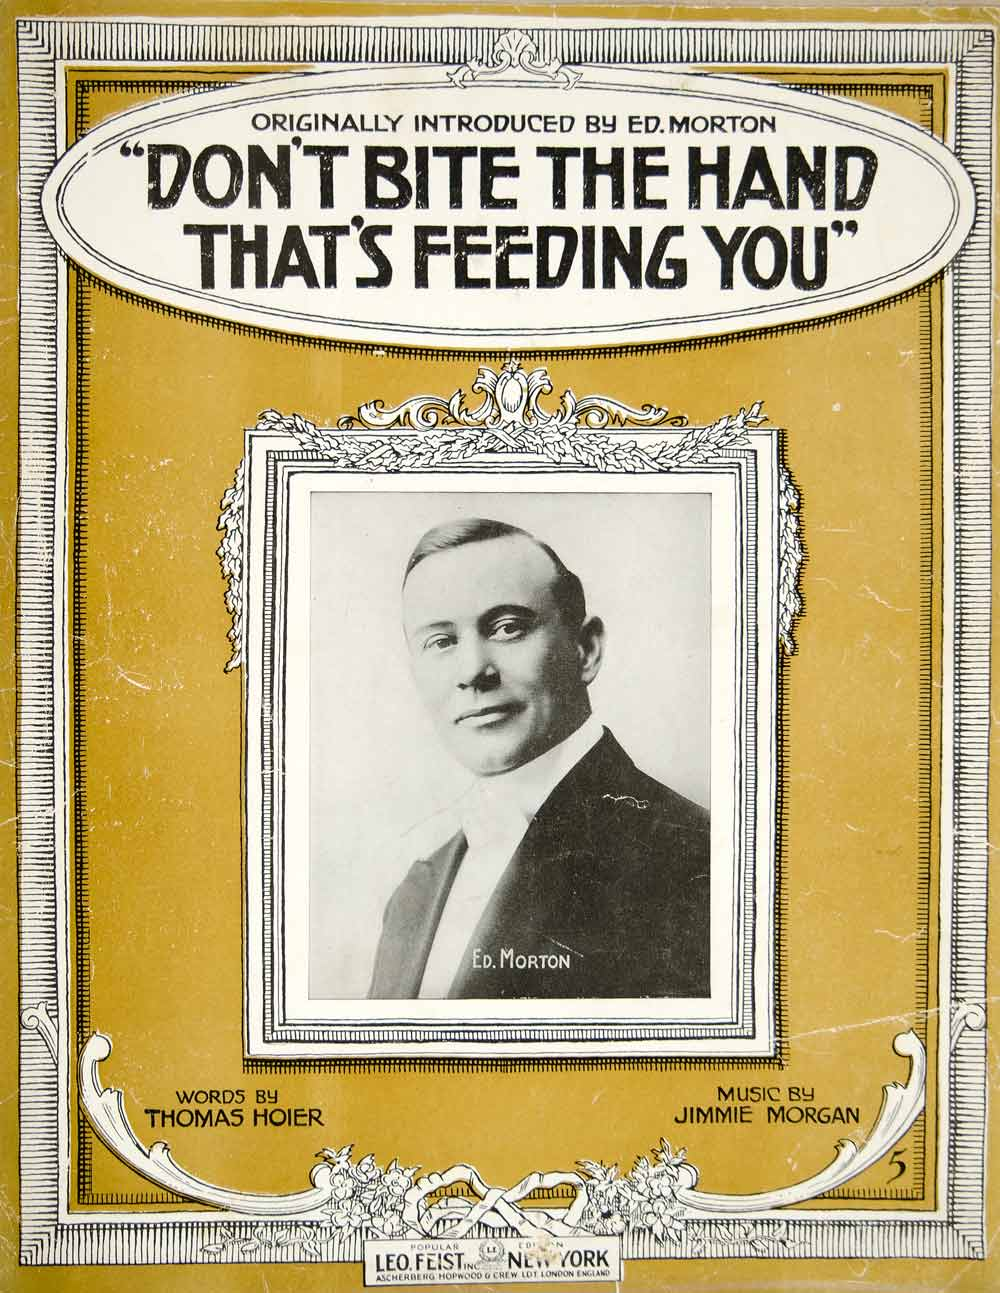 1915 Sheet Music Don't Bite the Hand That's Feeding You Ed Morton Hoier ZSM7